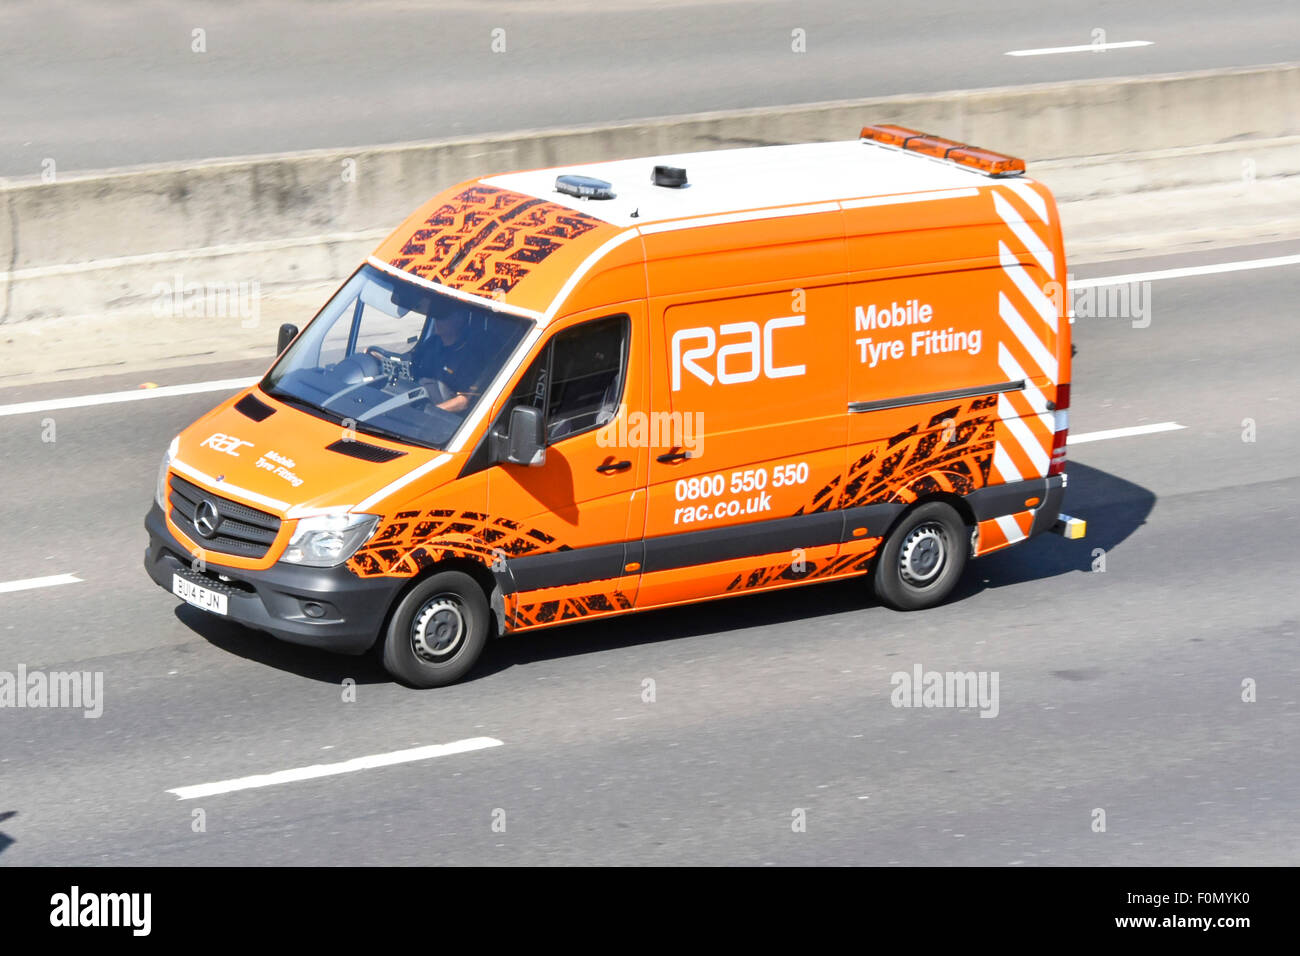 b66da628ed RAC Mobile Tyre Fitting service van driving along UK motorway - Stock Image